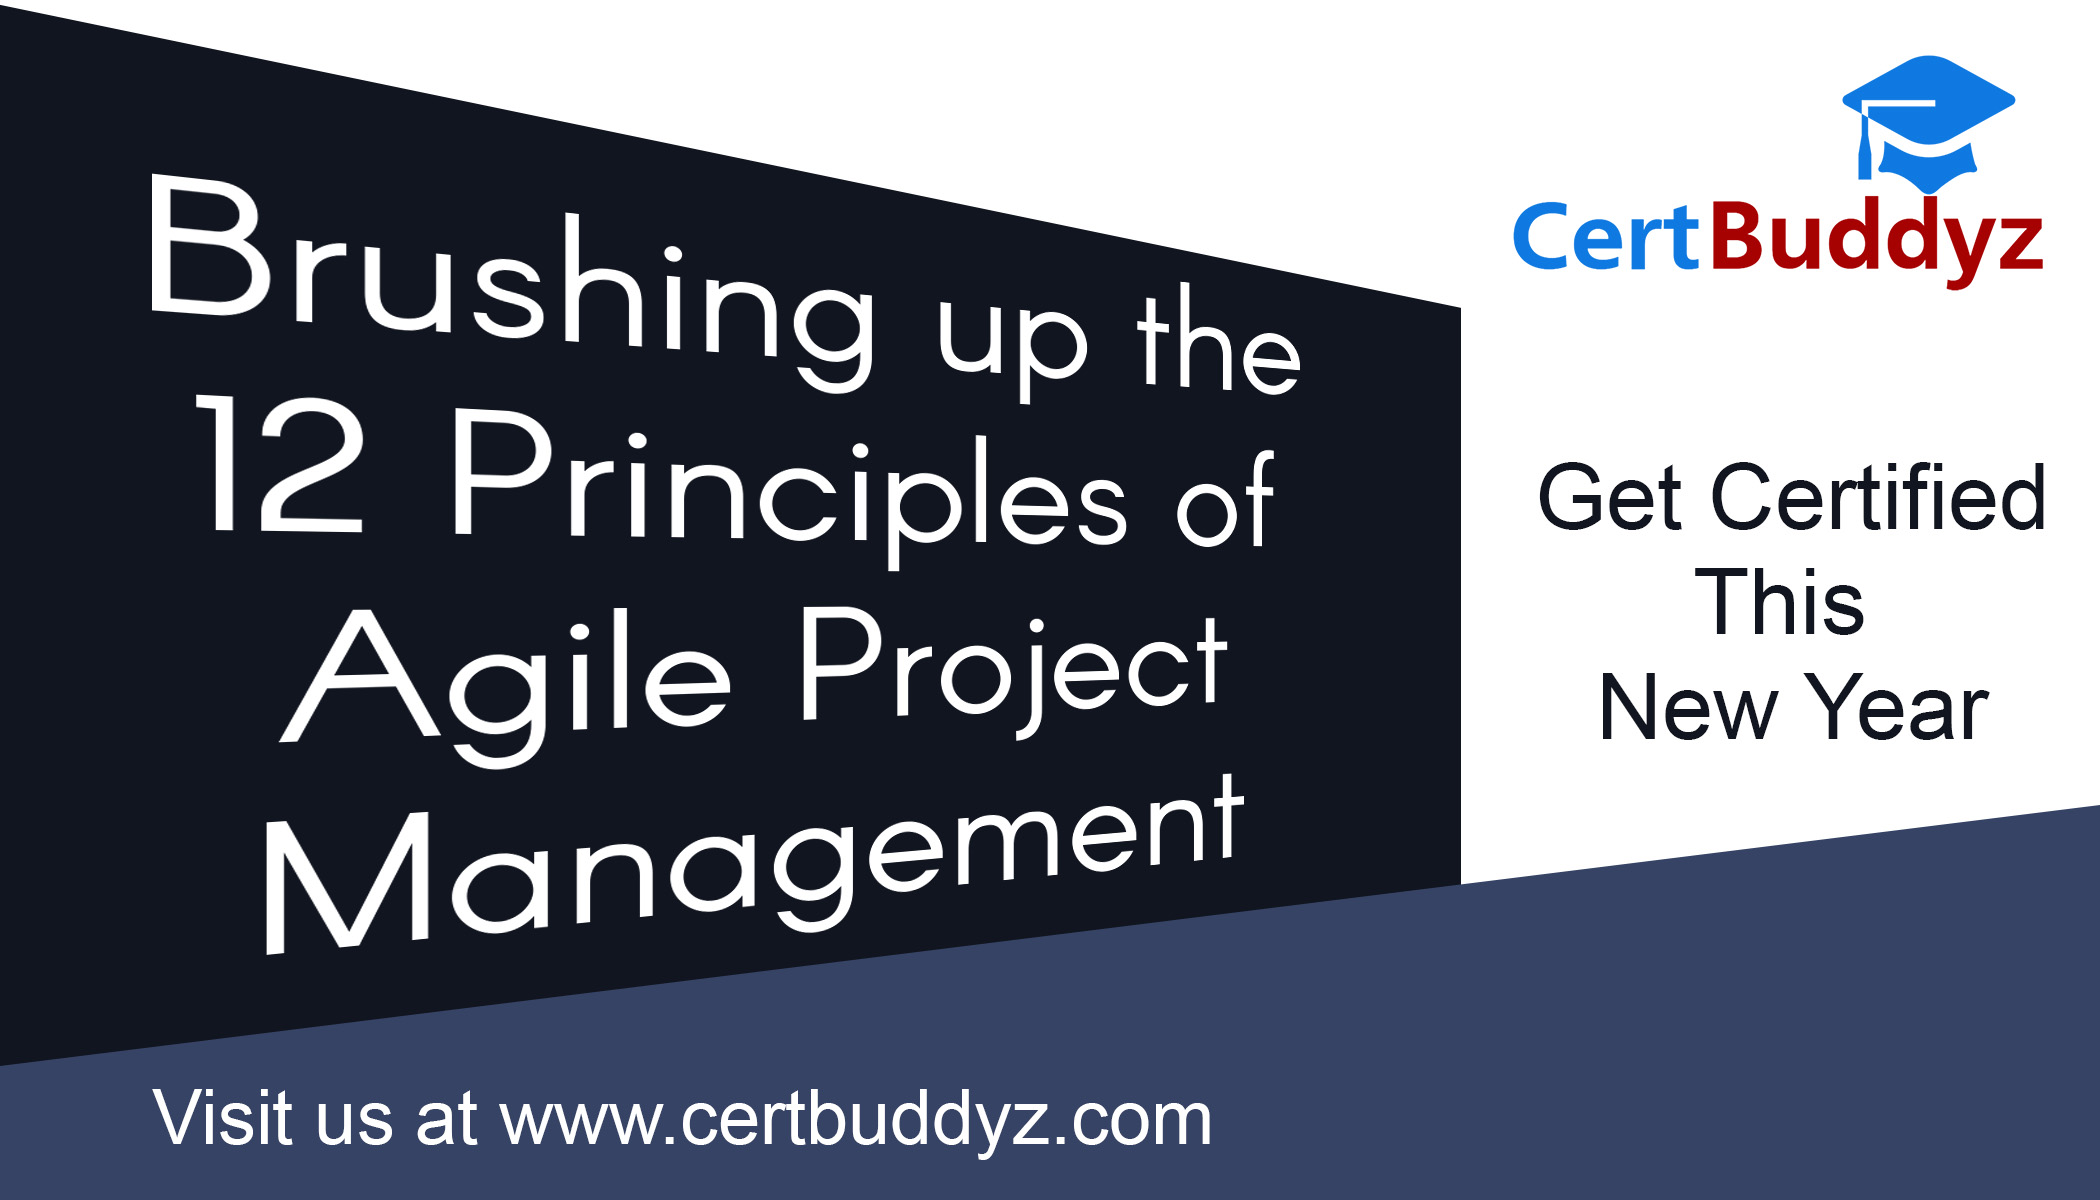 Agile Scrum Project Management Certification brushing up the basic principles of agile project management